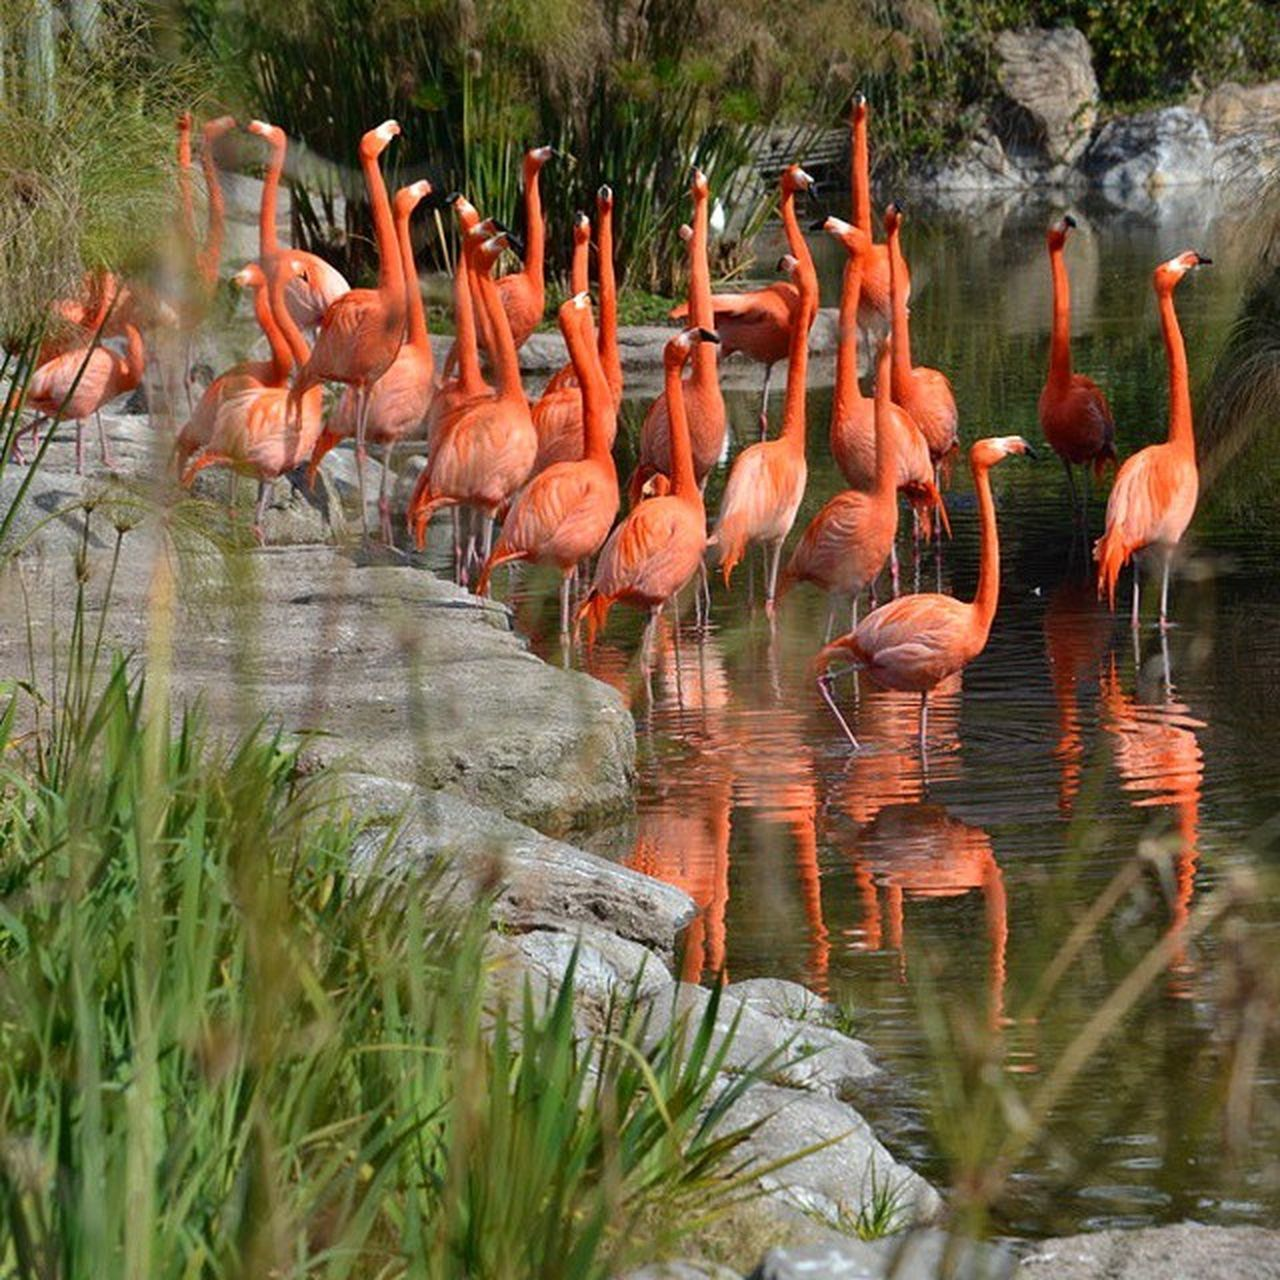 Flamencos Temaiken Bioparque Colores Colorful Argentina aves